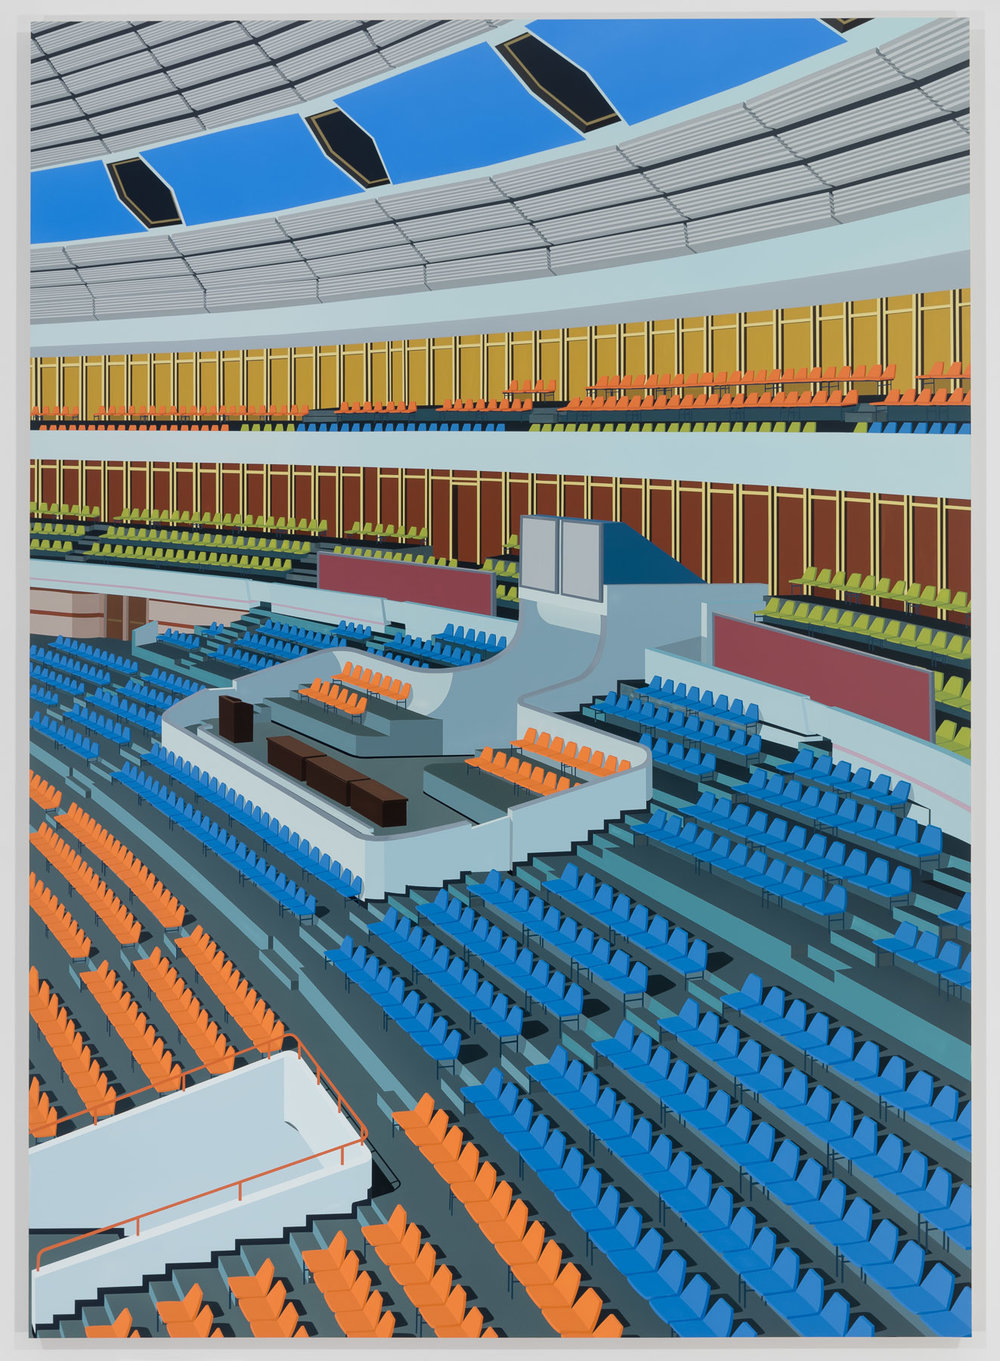 Stadium, Pyongyang, 2018. Acrylic on Dibond, 84 x 60 inches (213.4 x 152.4 cm)